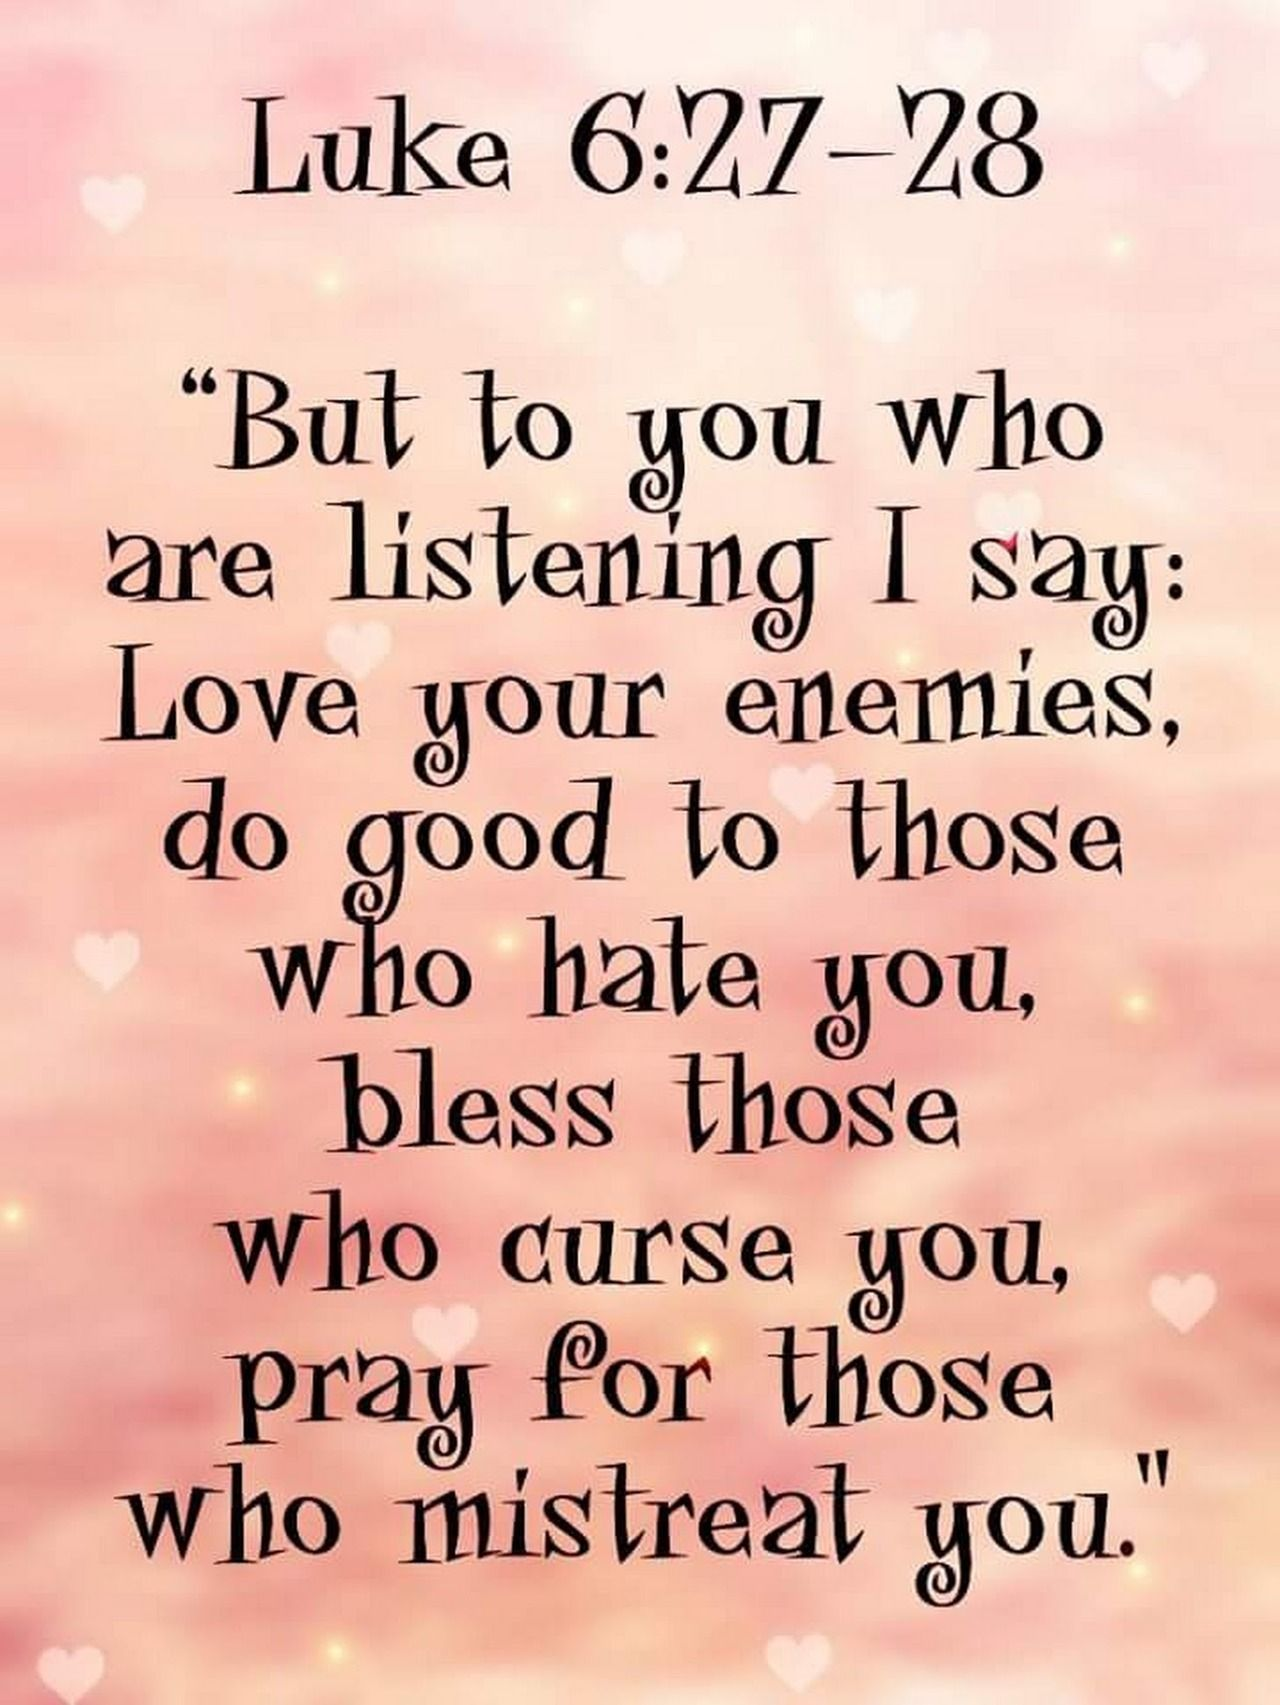 """Luke 6:27-28 (NIV) - """"But to you who are listening I say: Love your  enemies, do good to those who hate you, bless those who curse you, pray for  those who ..."""